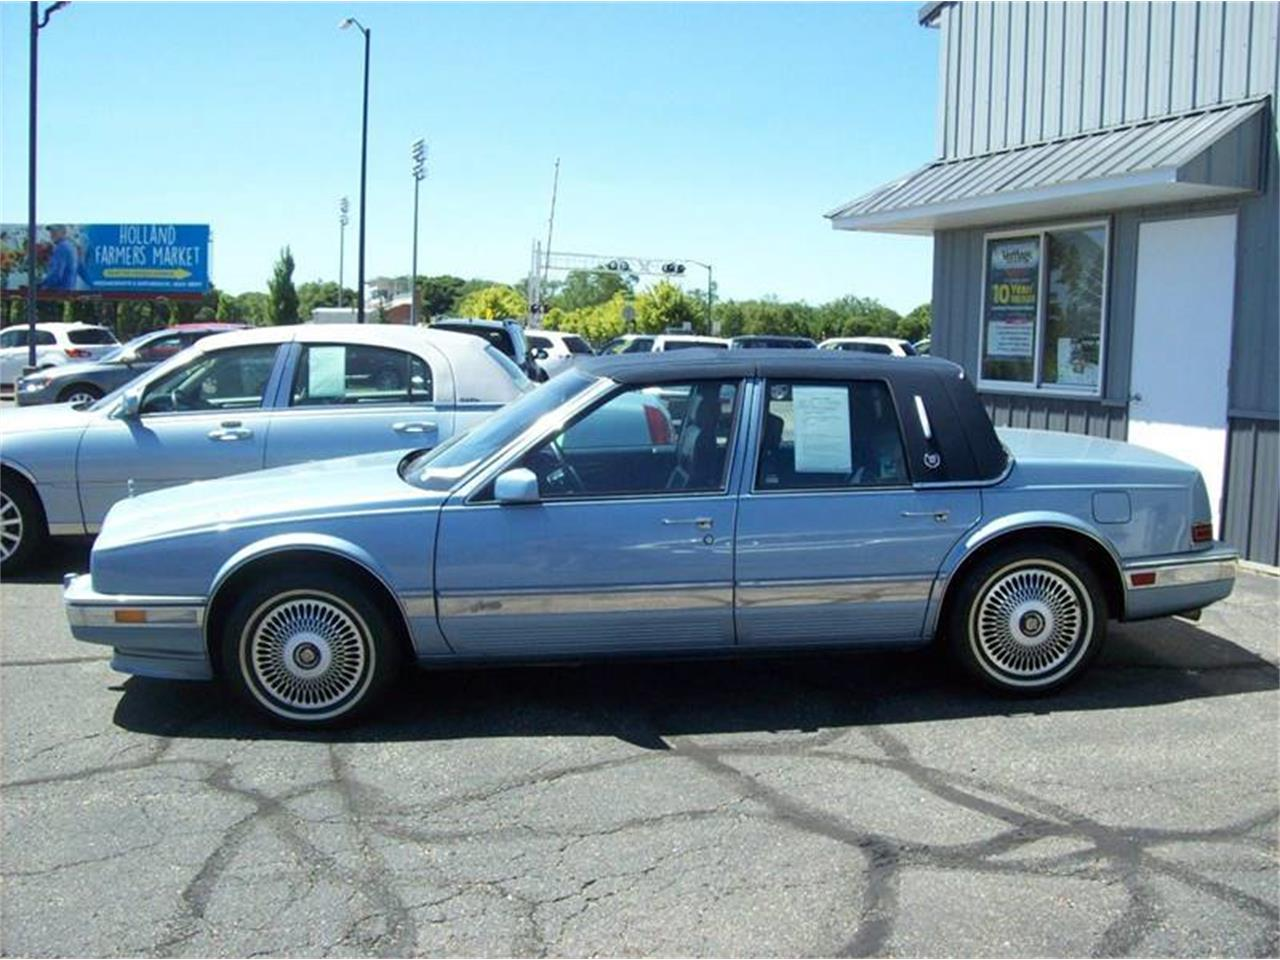 1991 cadillac seville for sale classiccars com cc 1109831 1991 cadillac seville for sale